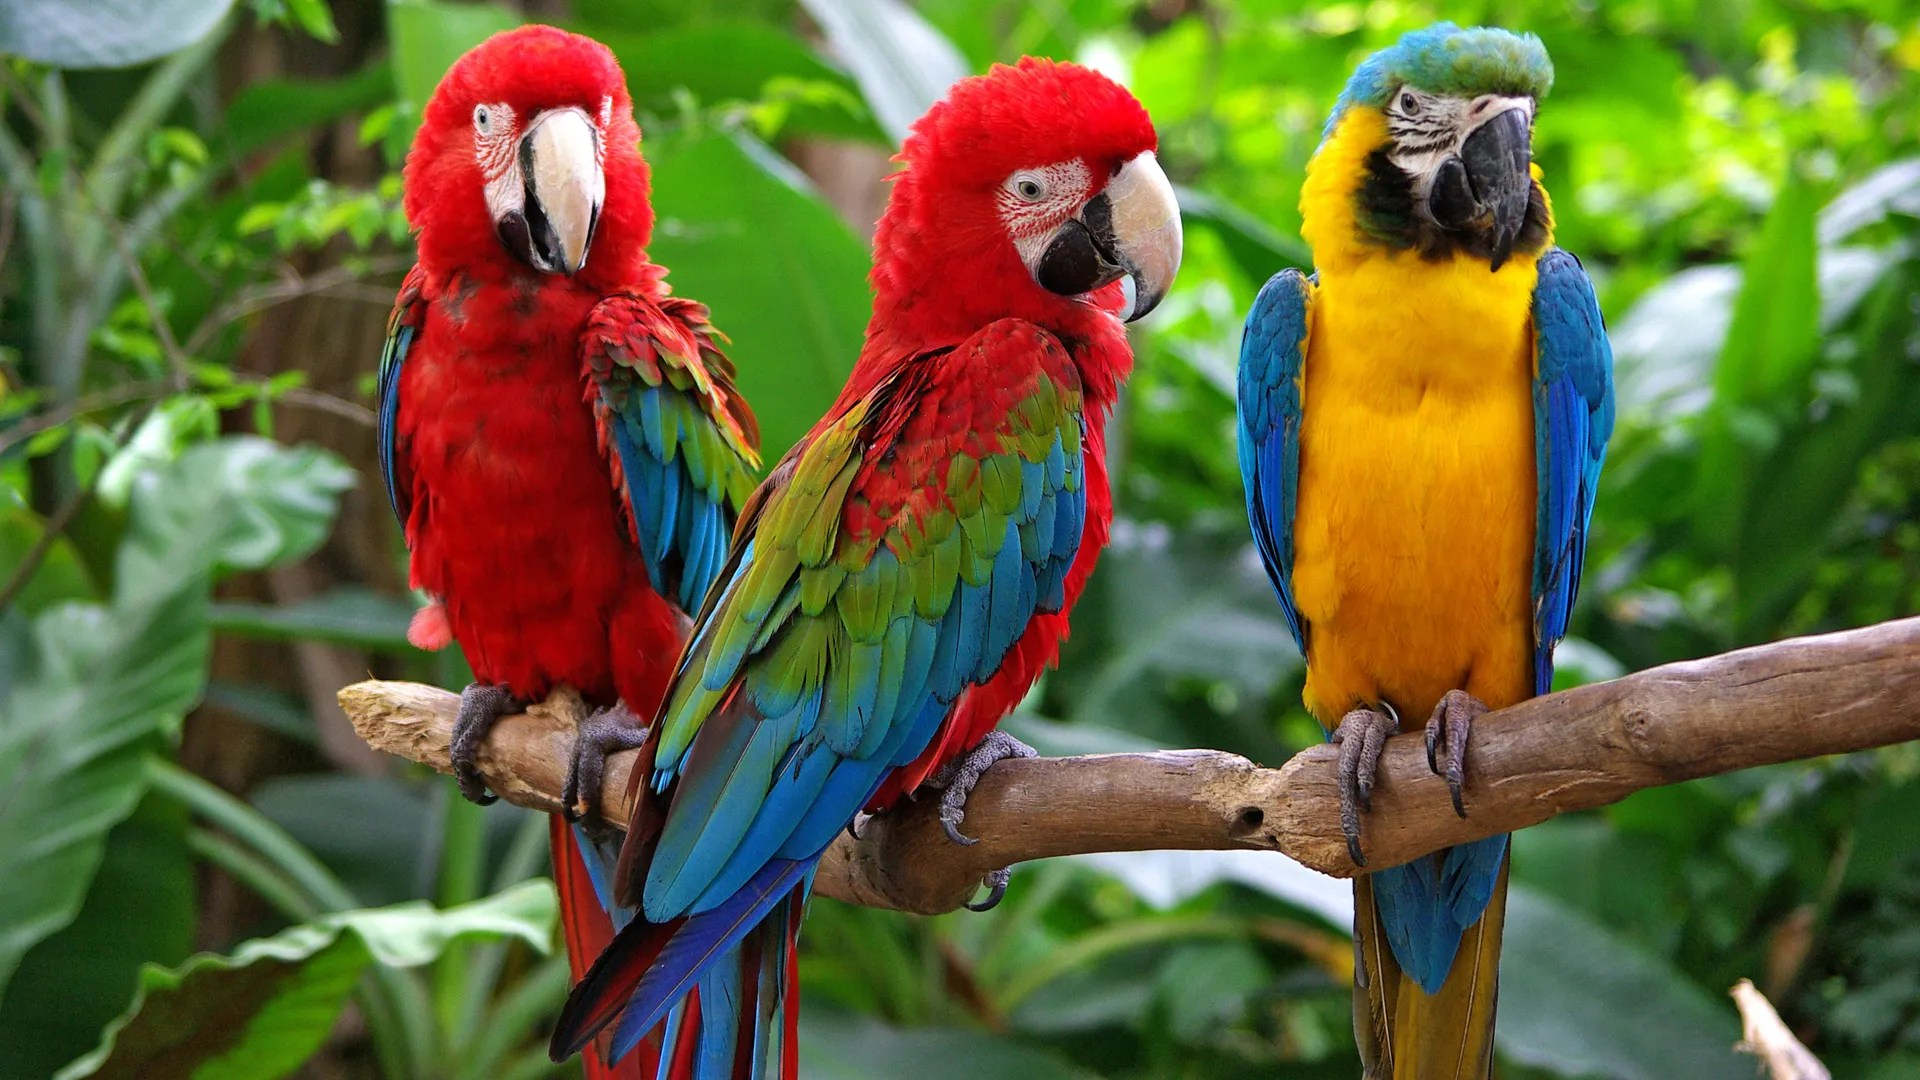 Interesting Facts About Parrot Species Revealed